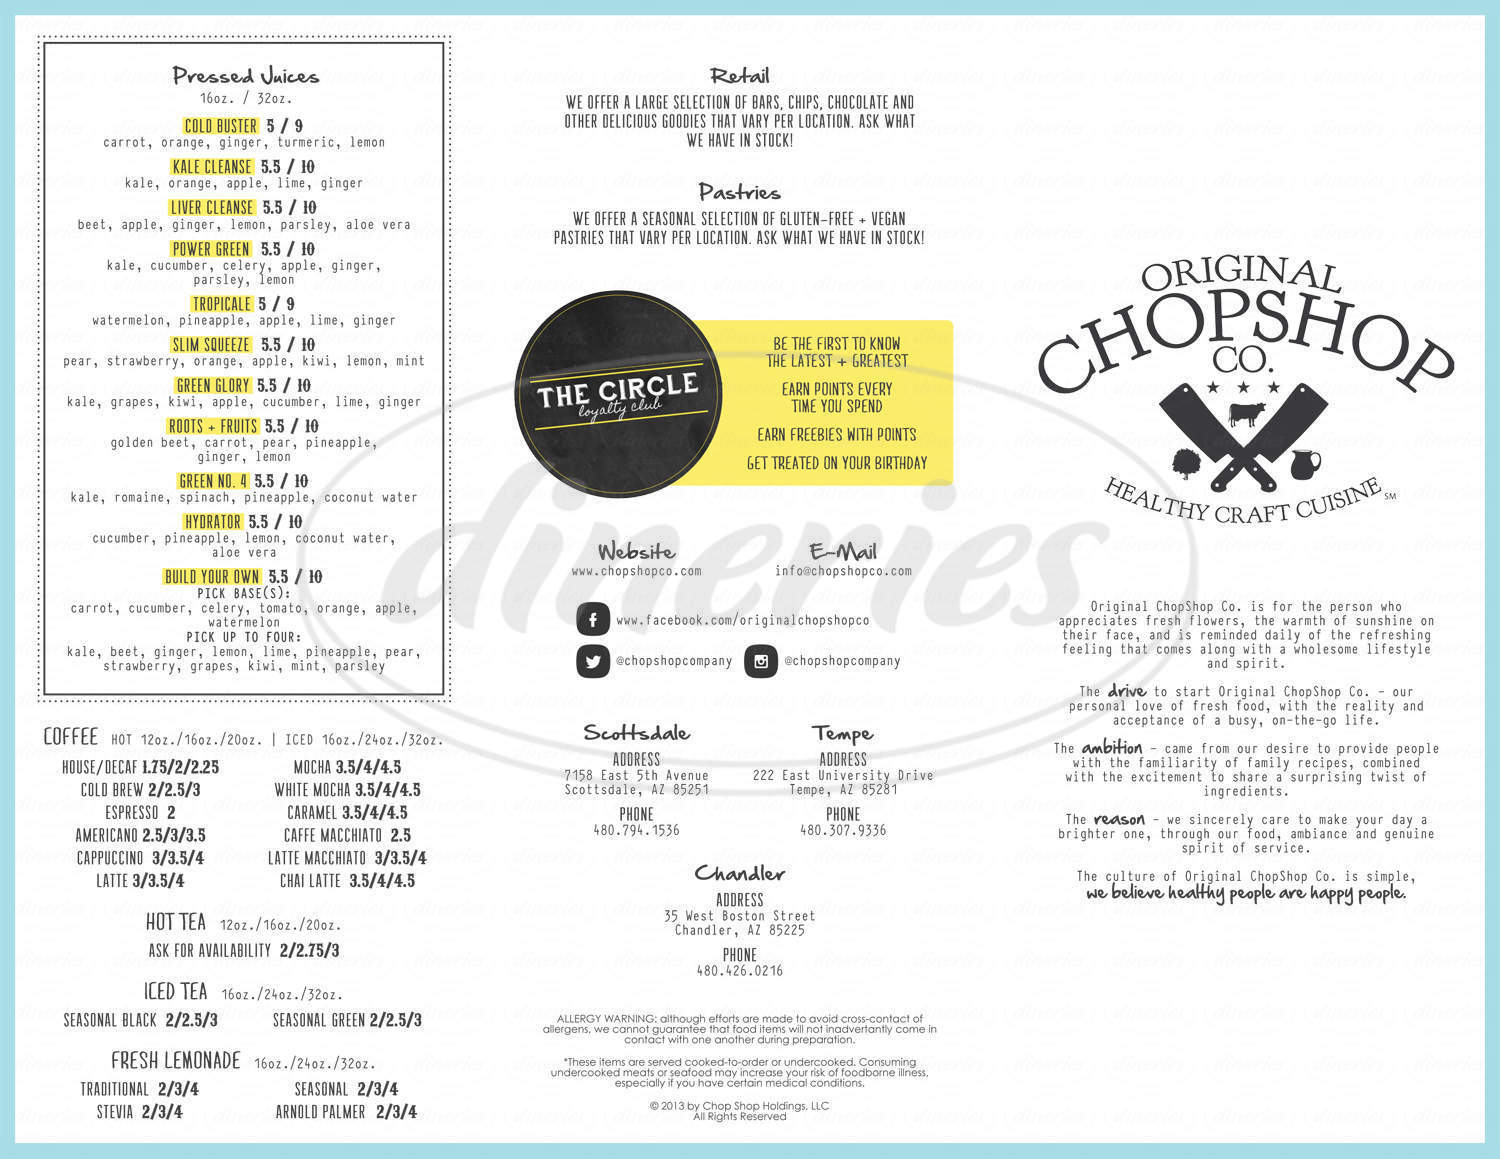 menu for Original ChopShop Co.